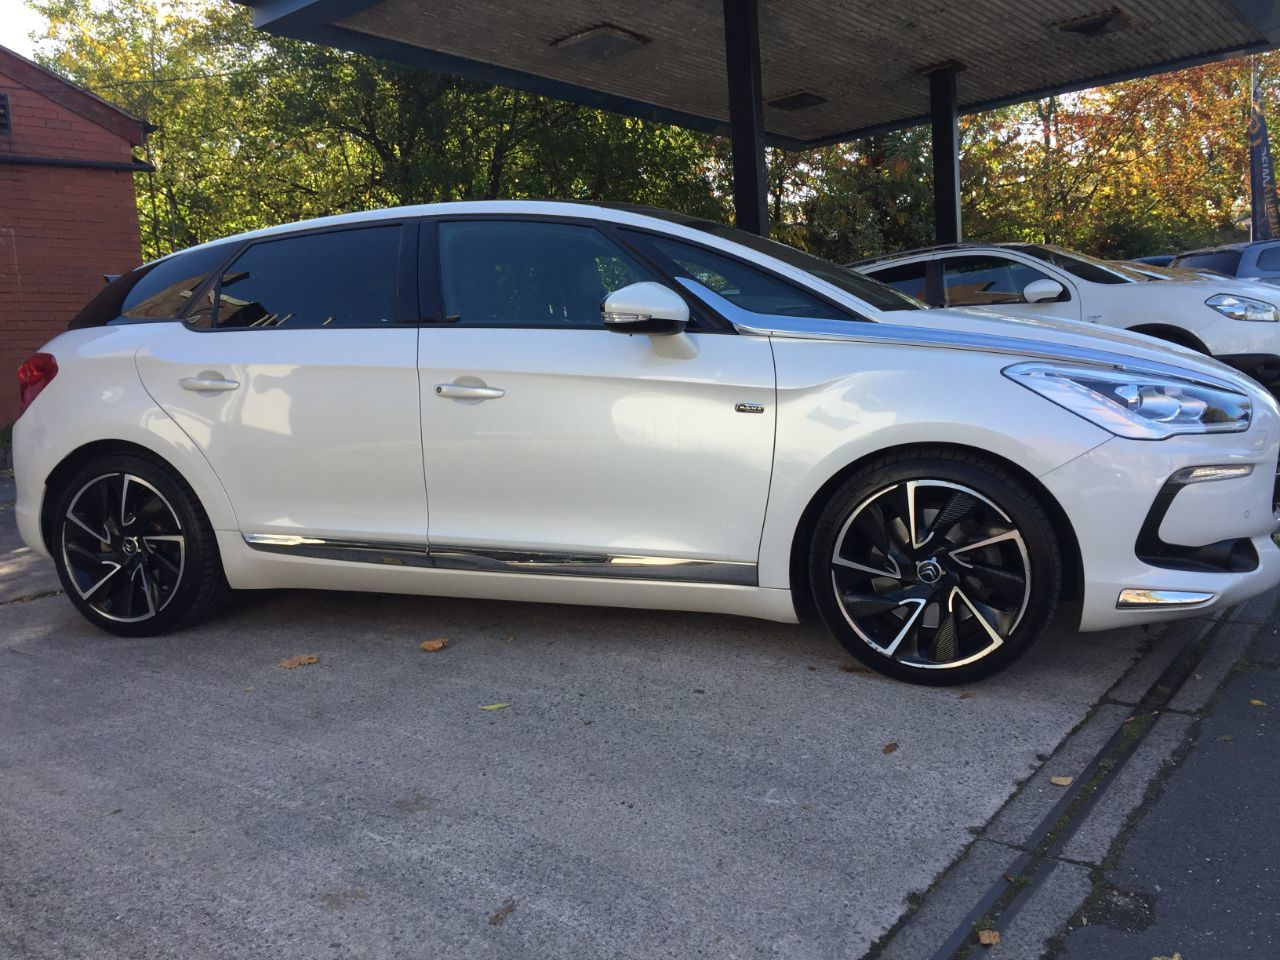 Citroen DS5 2.0 HDi Hybrid4 Airdream DSport 5dr EGS Hatchback Diesel / Electric Hybrid White